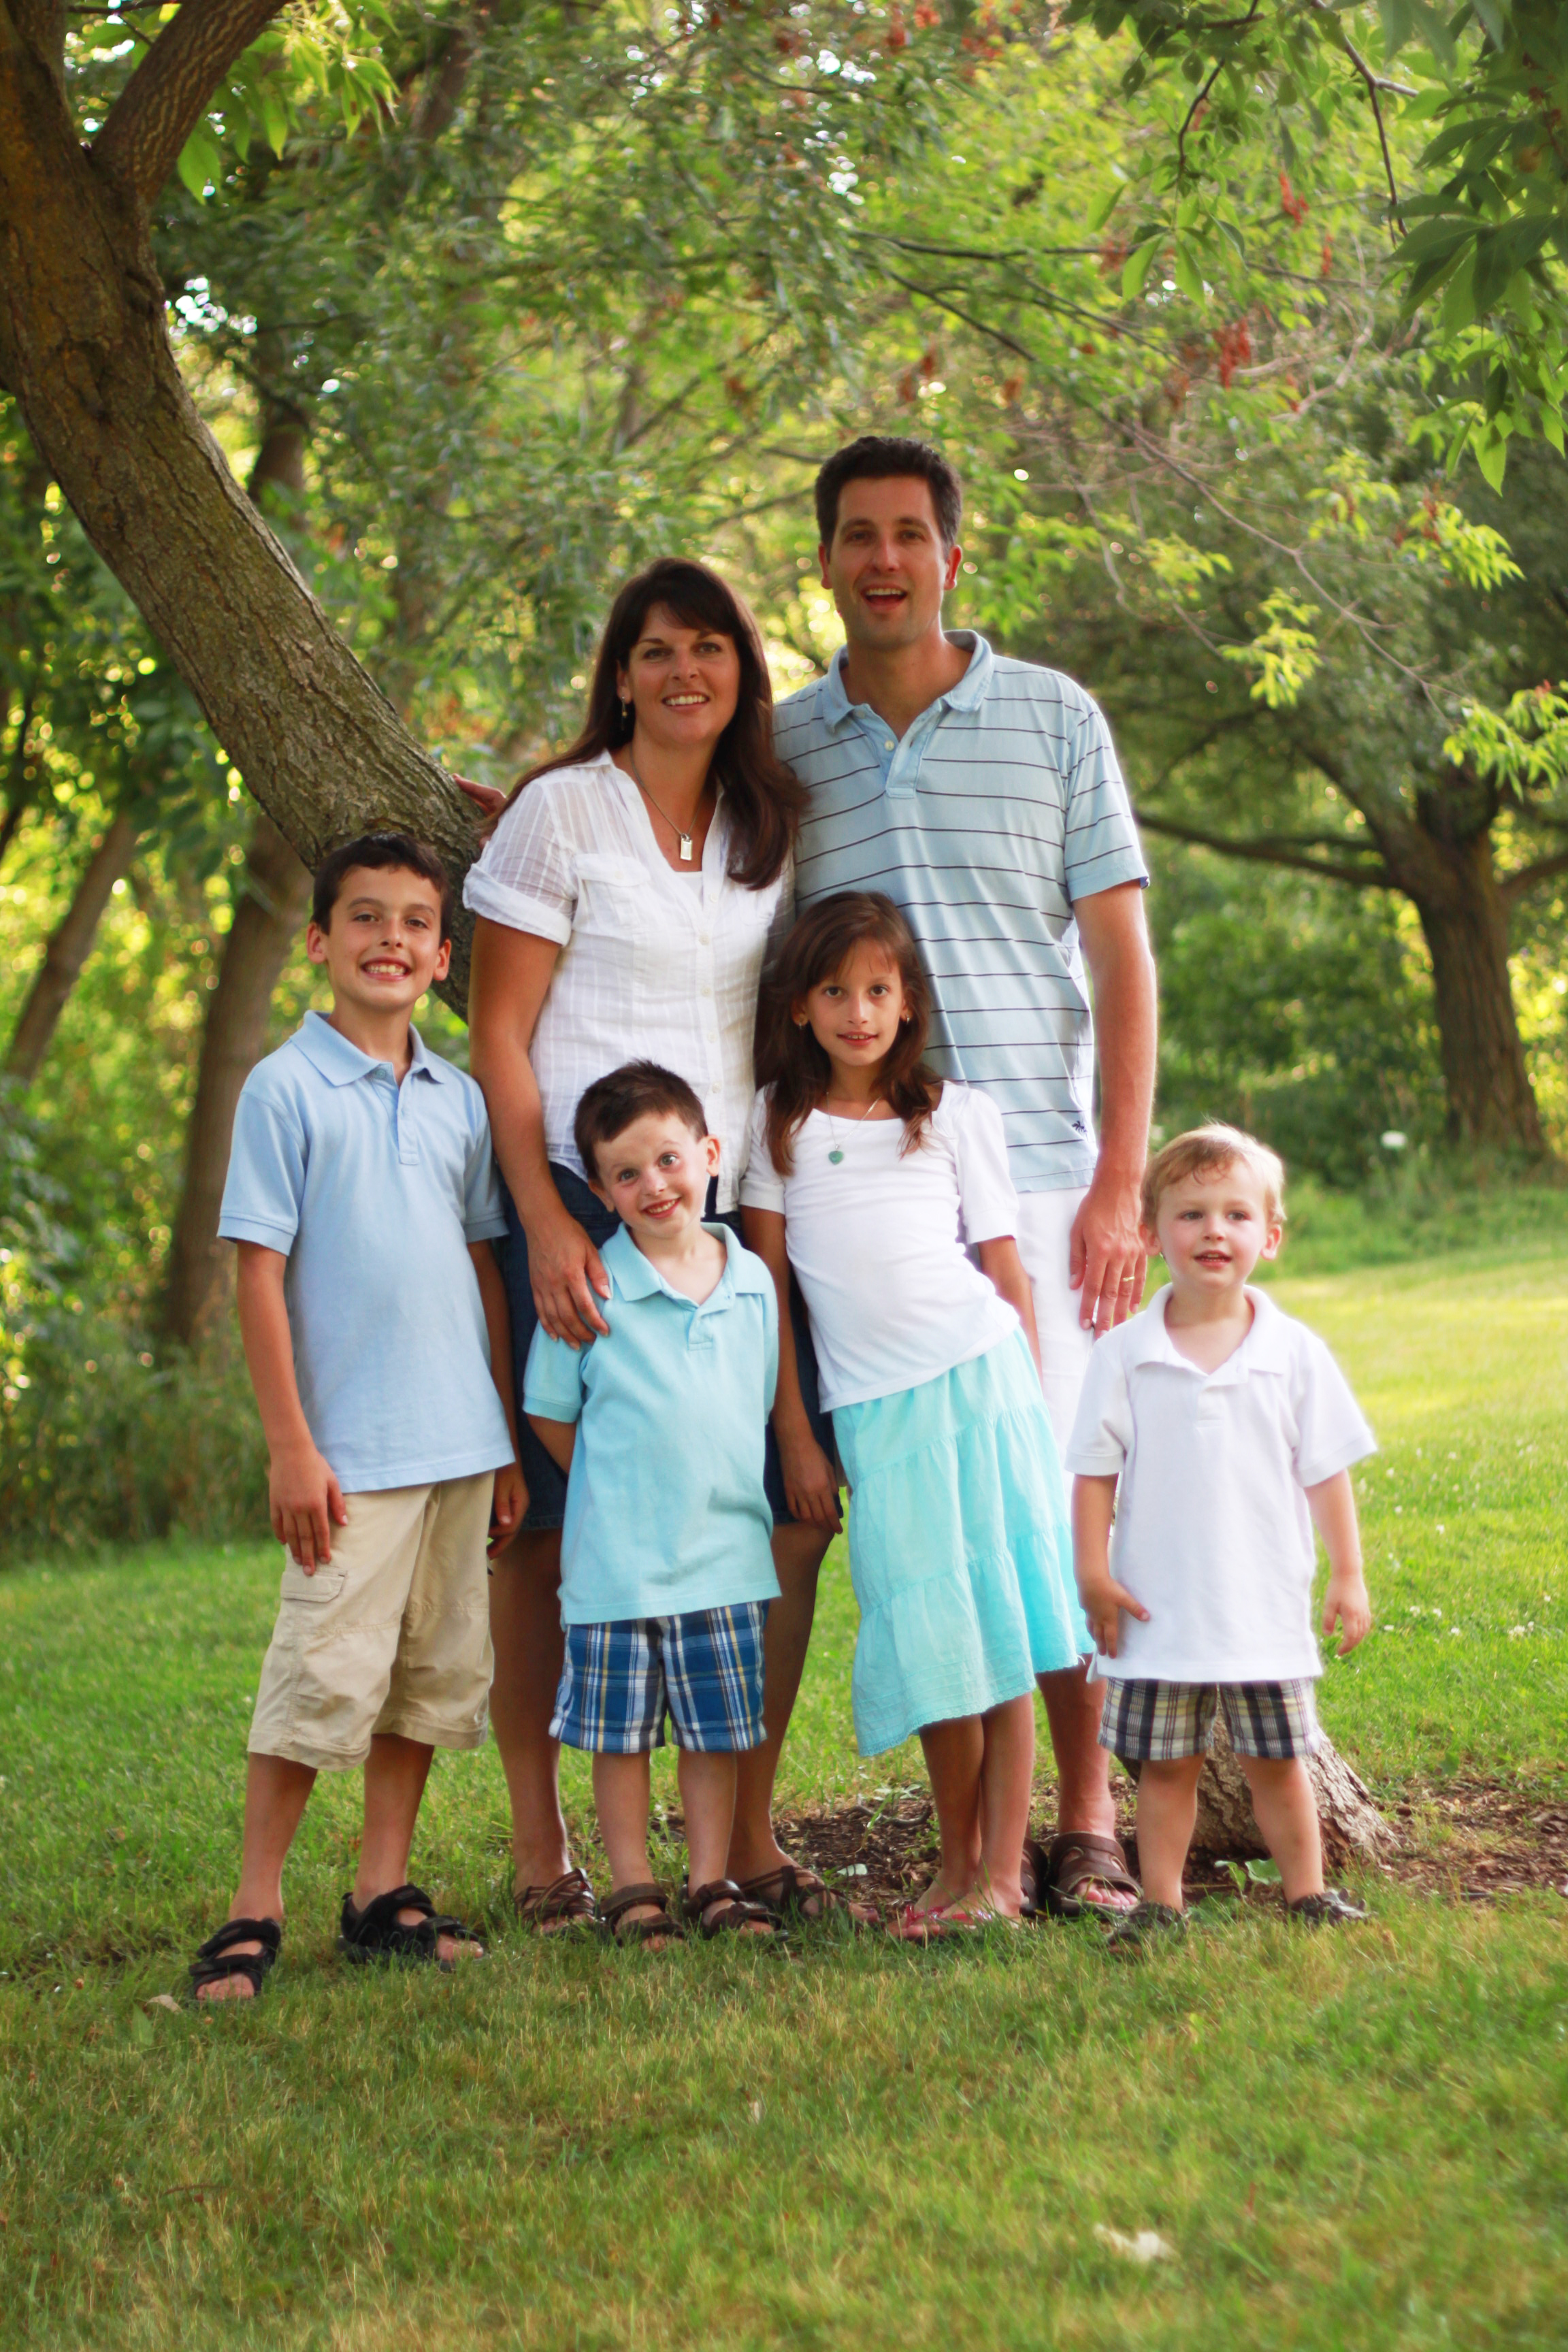 Family Photos | Commissional